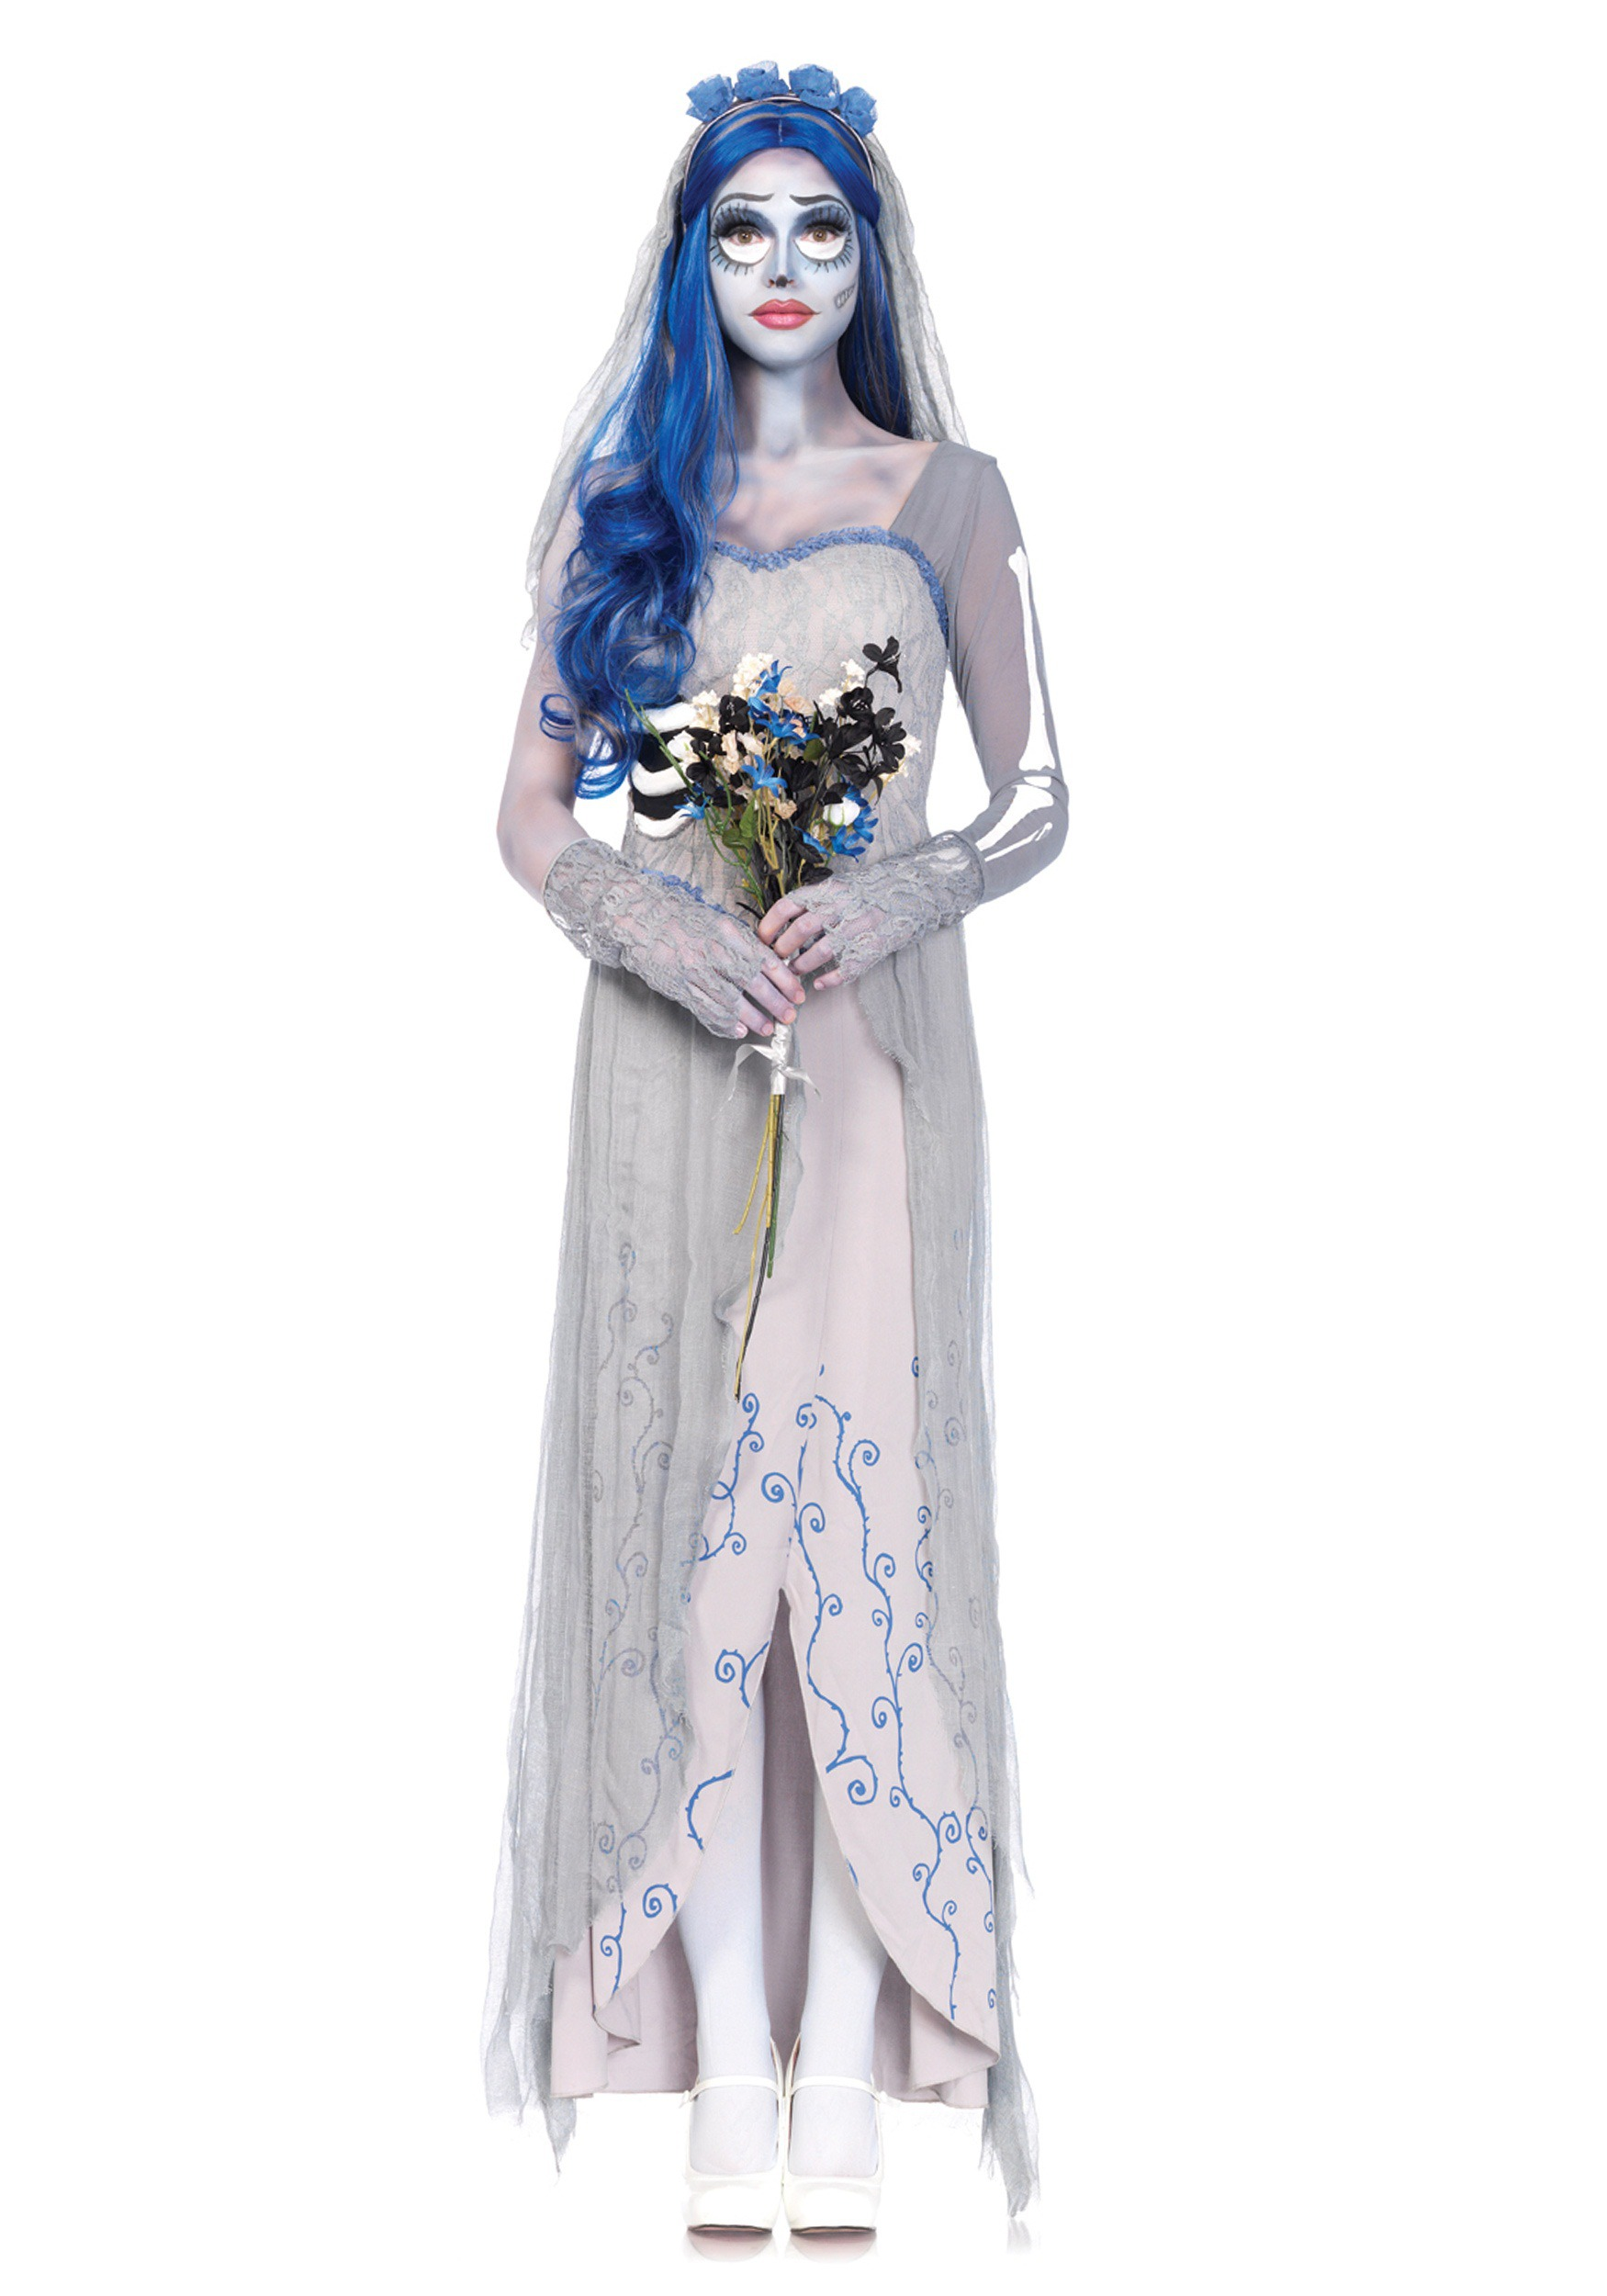 The Corpse Bride Costume